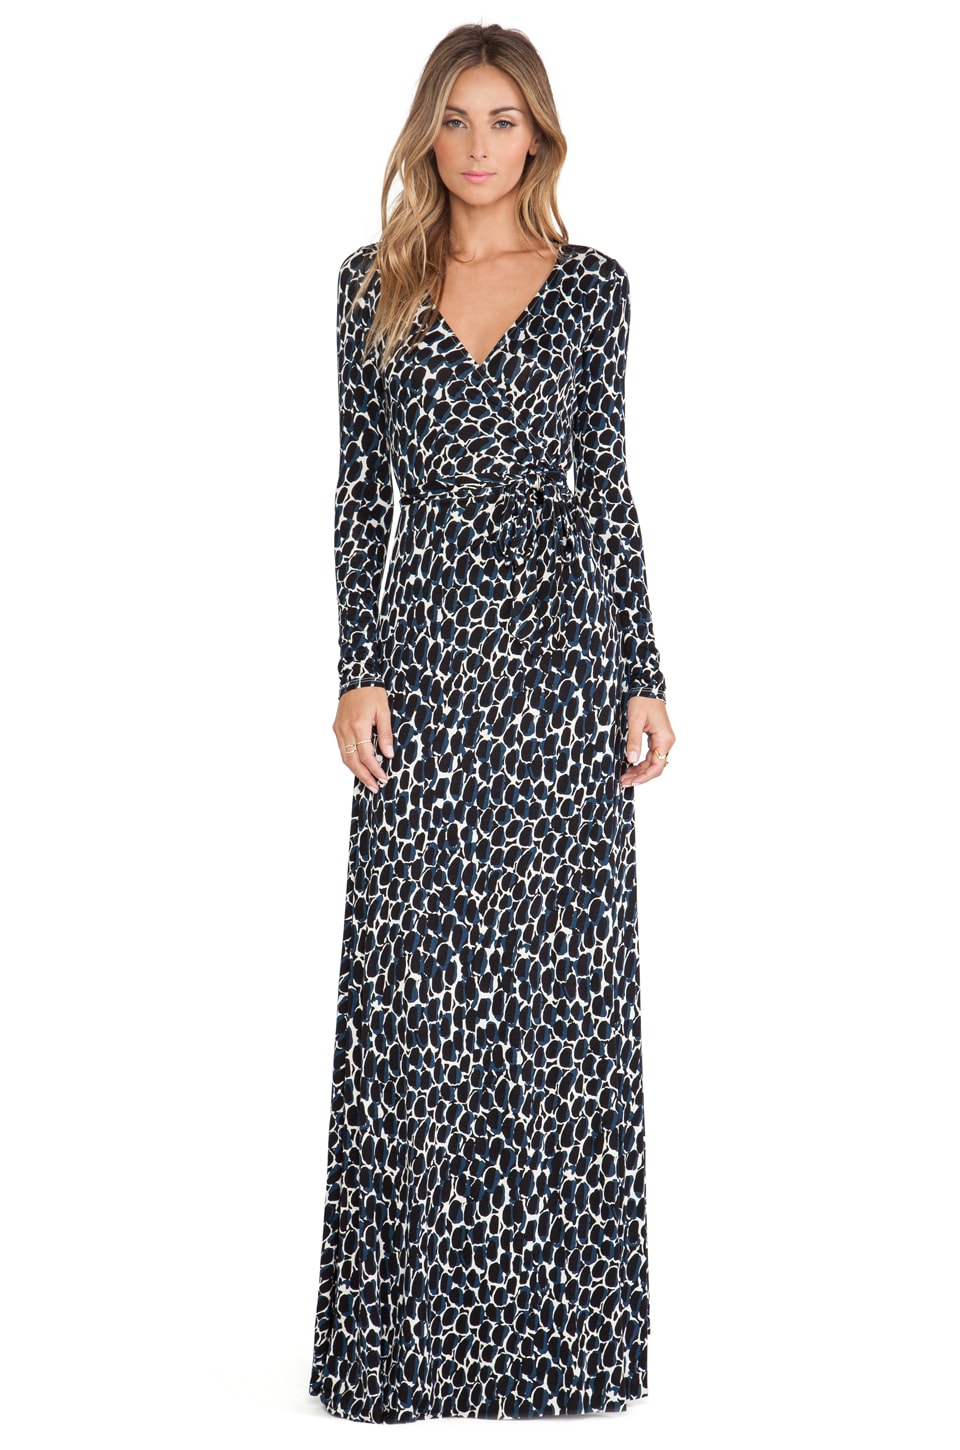 Rachel Pally Harlow Dress in Night Python